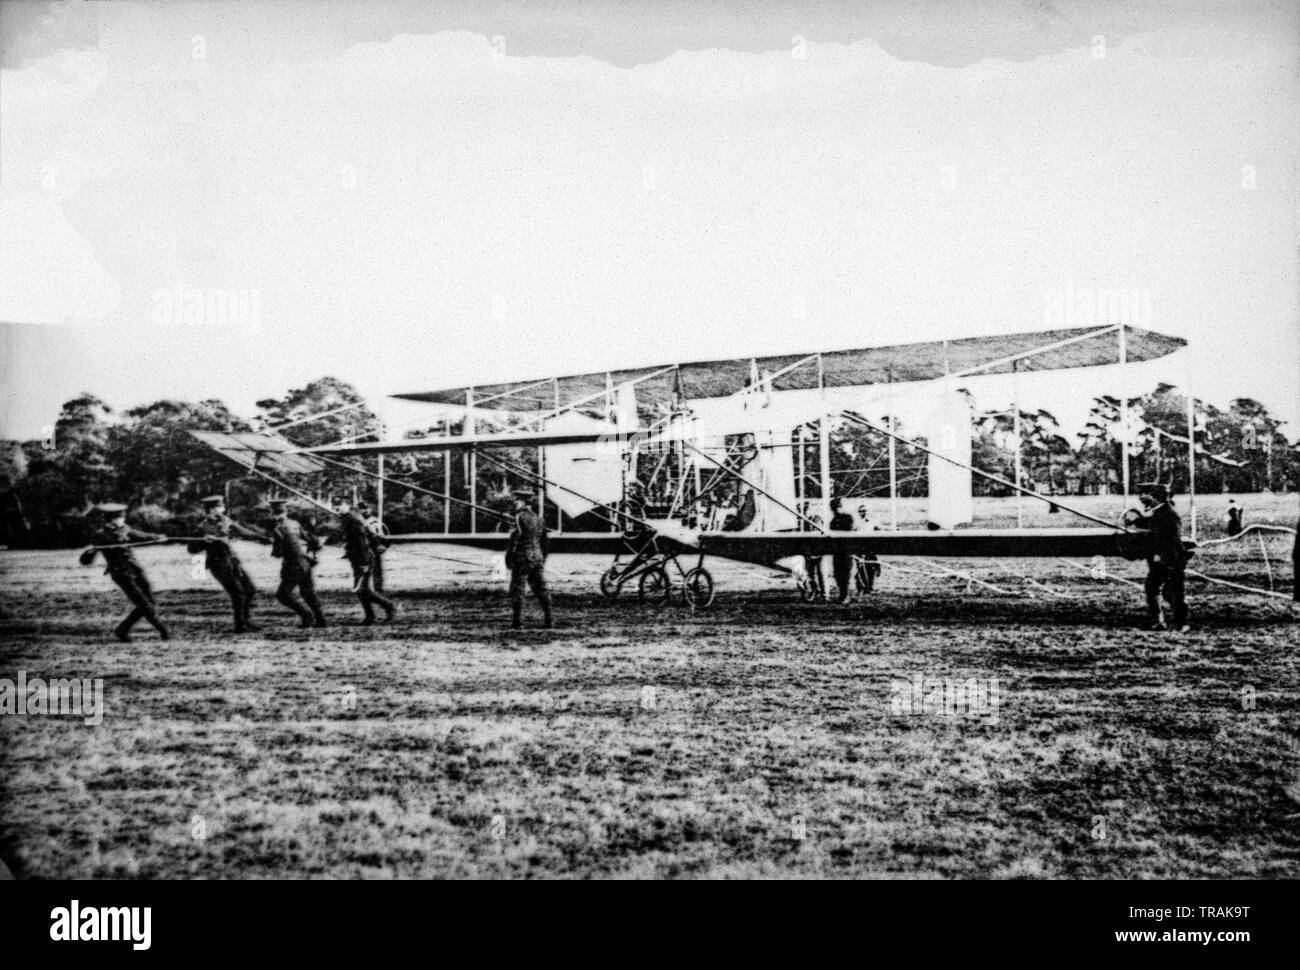 A black and white photograph taken in January 1909 showing a Cody Biplane being prepared for flight by members of the armed forces. This aircraft was known as British Army Aeroplane No. 1, or Cody 1. Designed  and built by Samuel Franklin Cody. - Stock Image